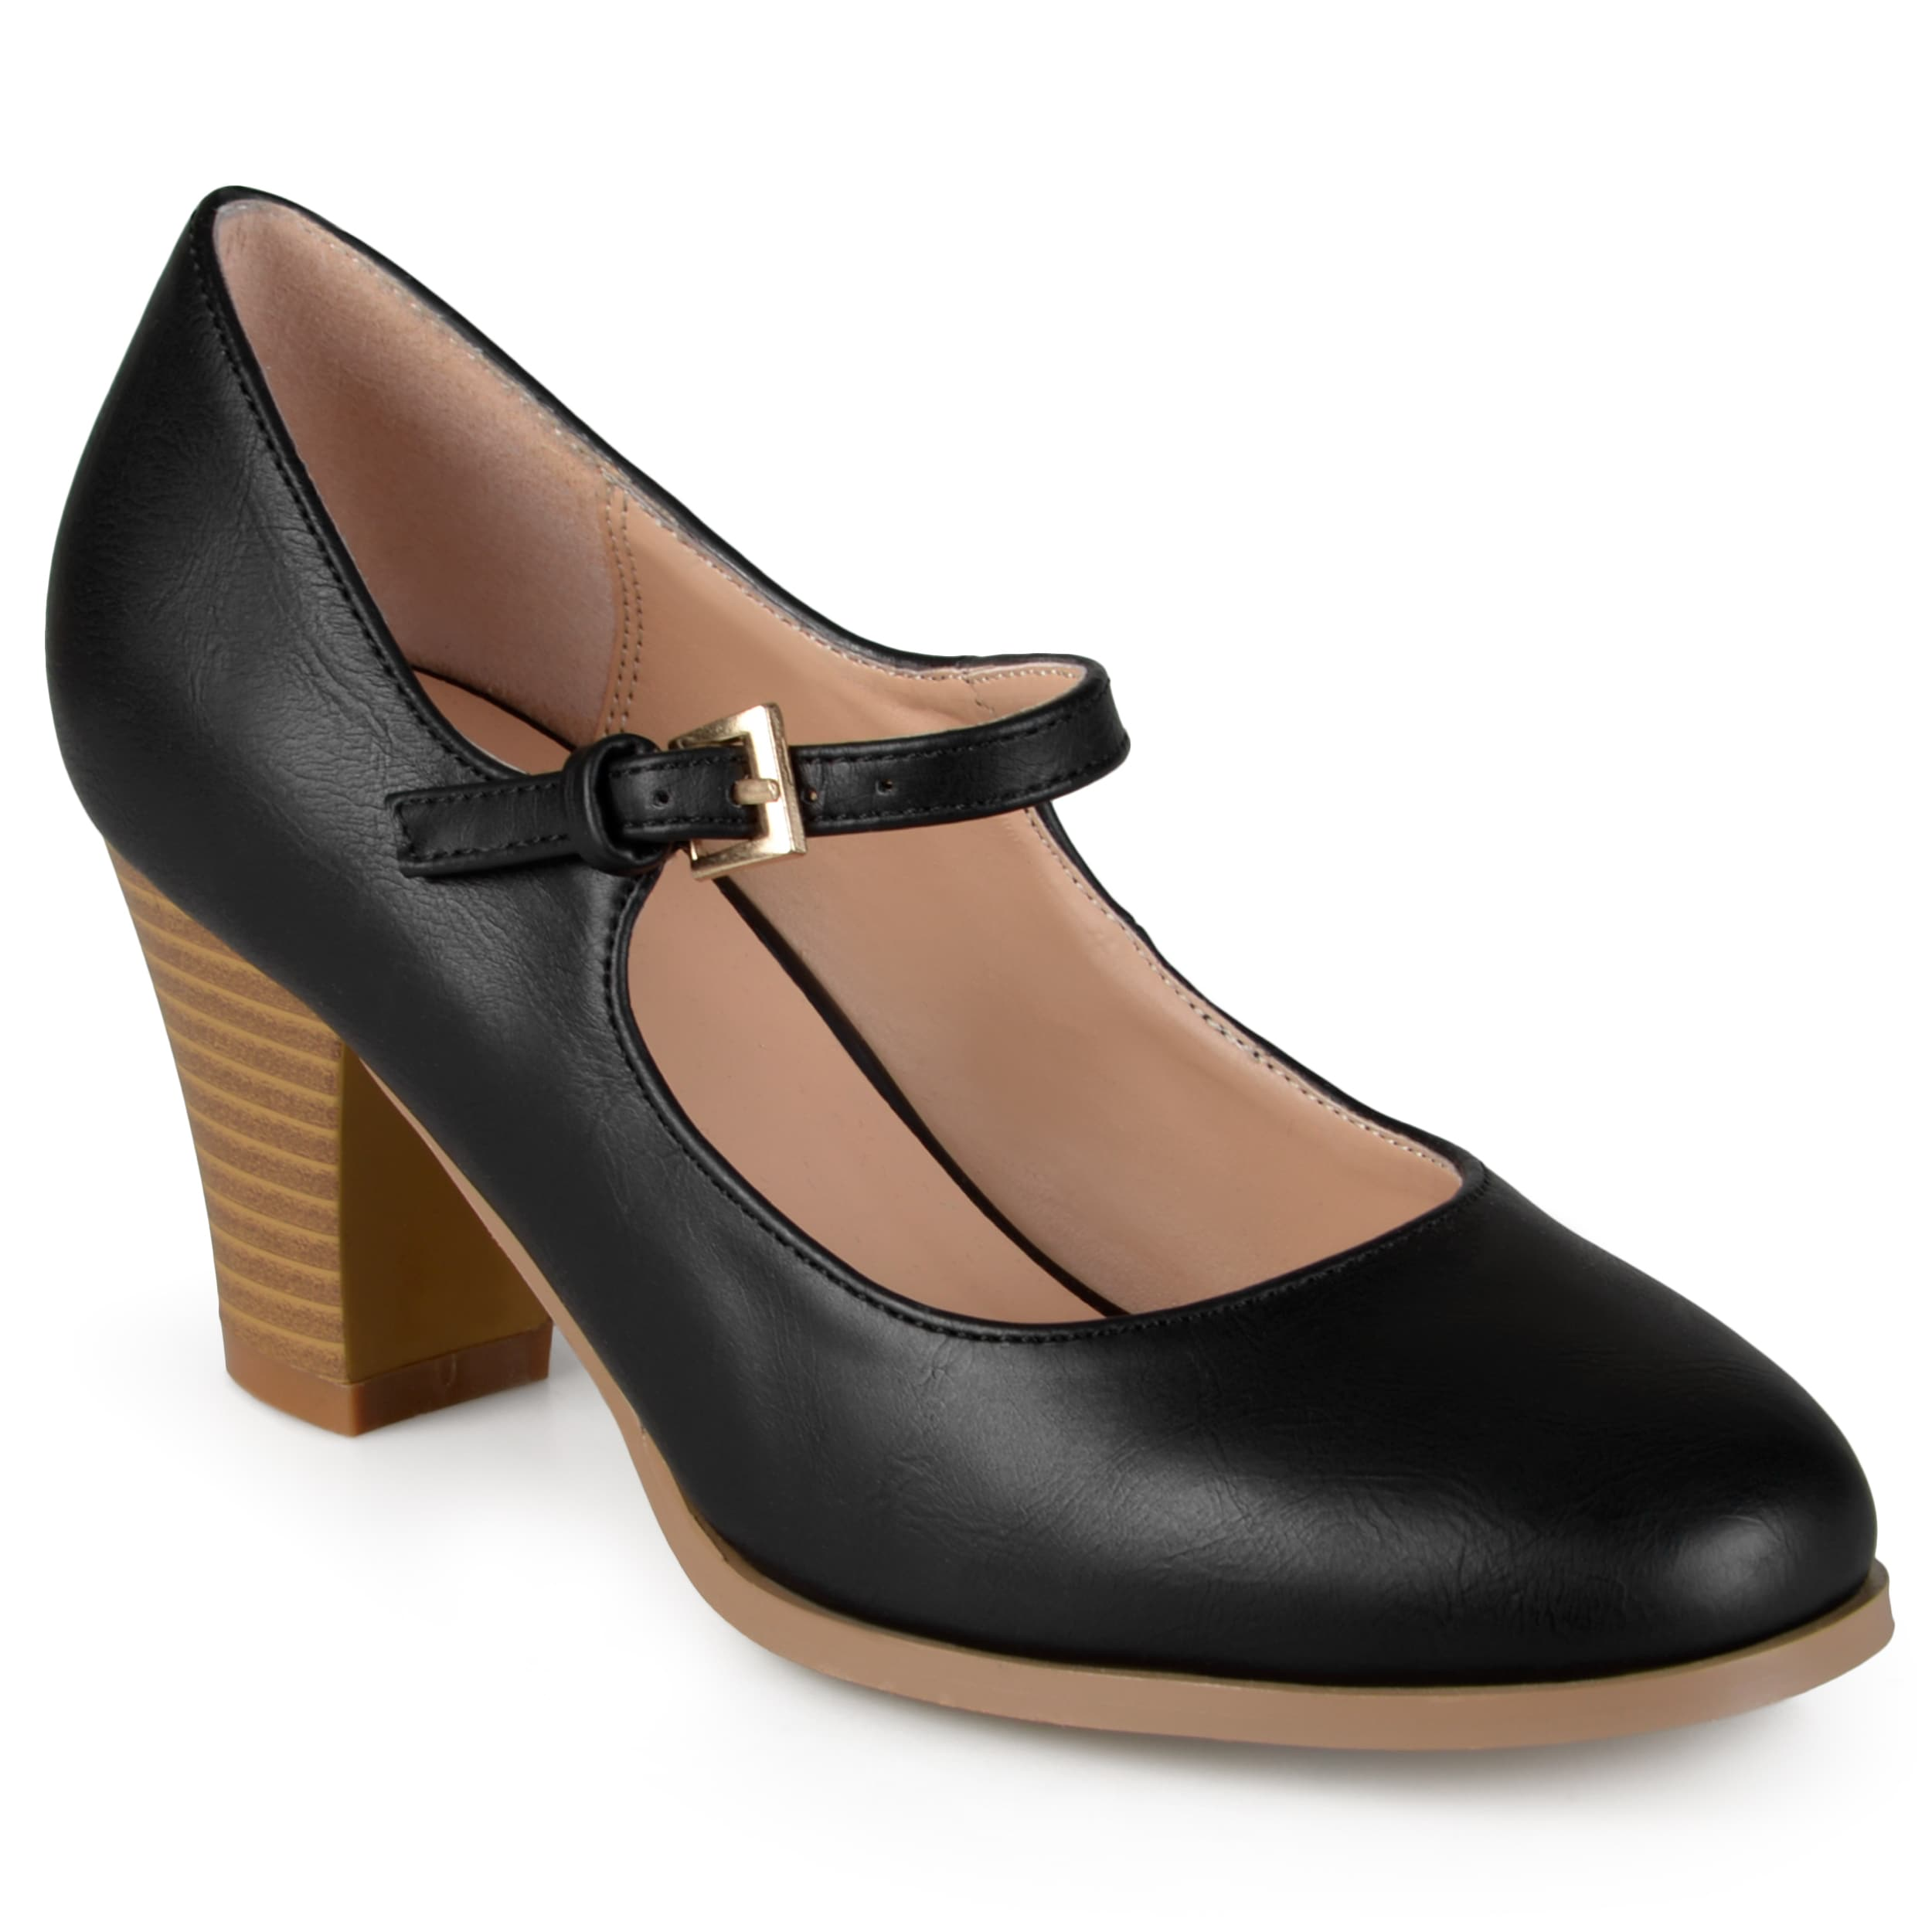 d628d99ef Shop Journee Collection Women's 'Jamie' Classic Mary Jane Pumps - Free  Shipping On Orders Over $45 - Overstock - 11079398